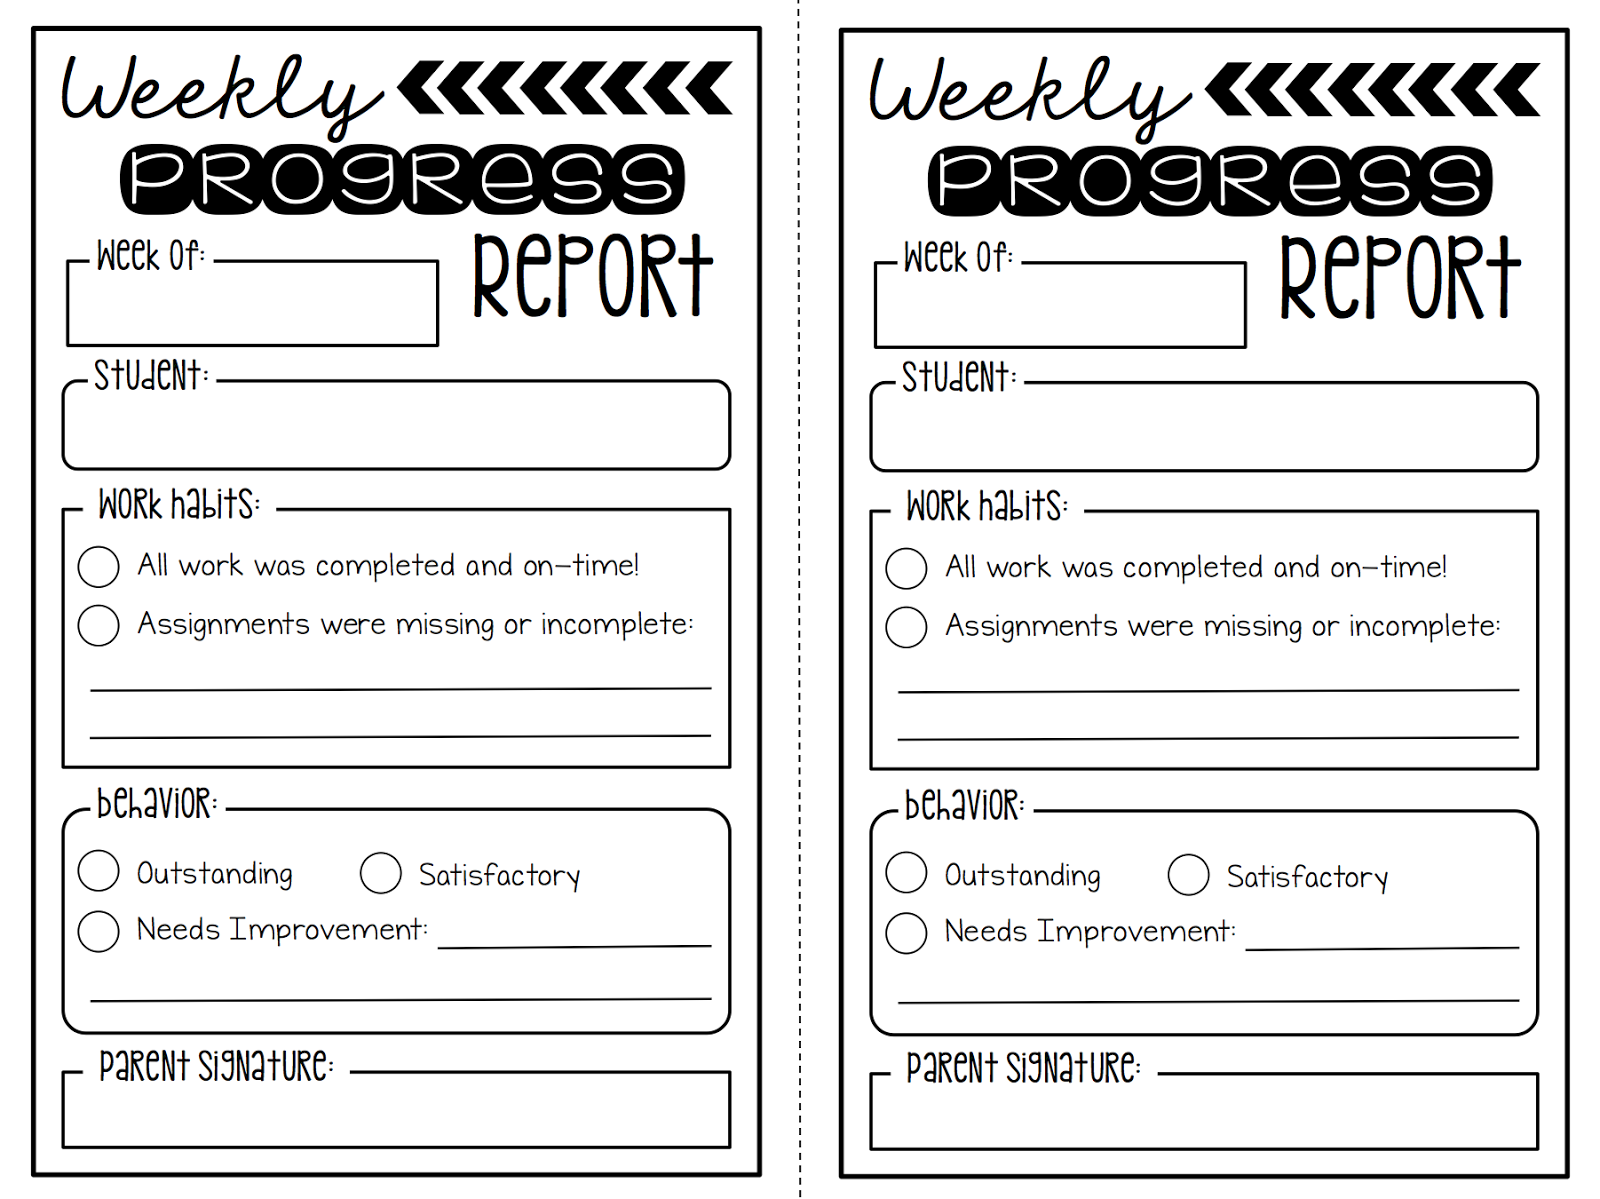 Summertime revamp 2 weekly progress reports freebie for First grade progress report template